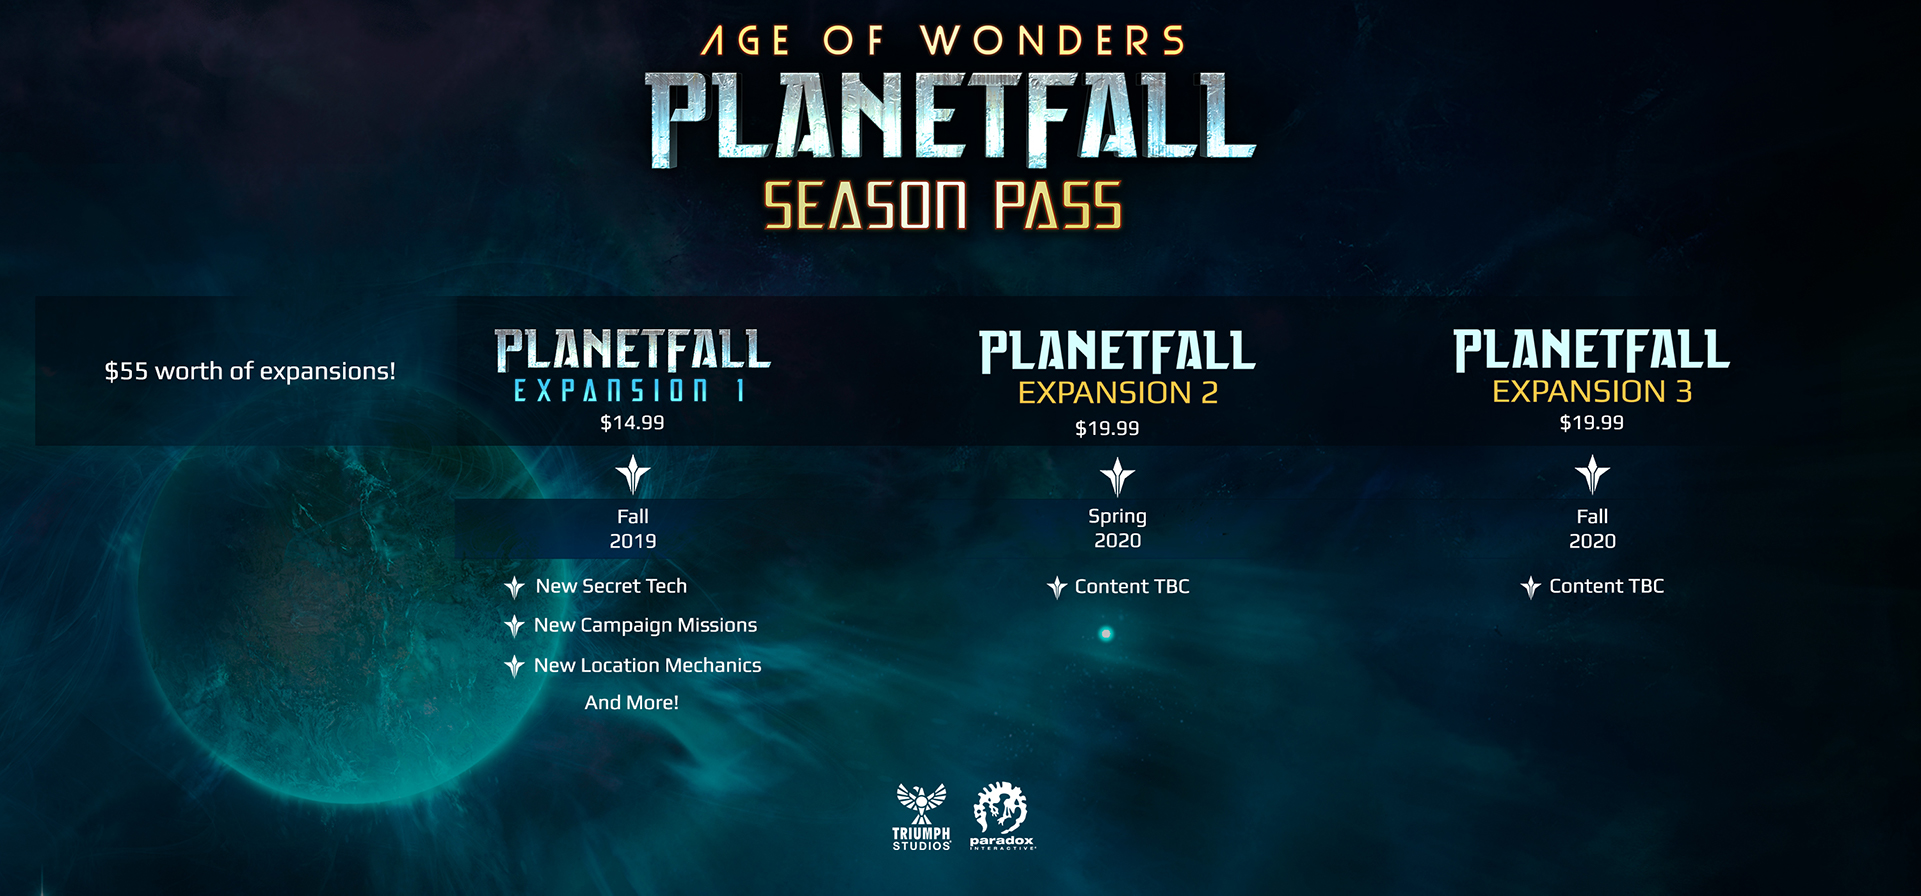 Age of Wonders: Planetfall FAQ | Paradox Interactive Forums